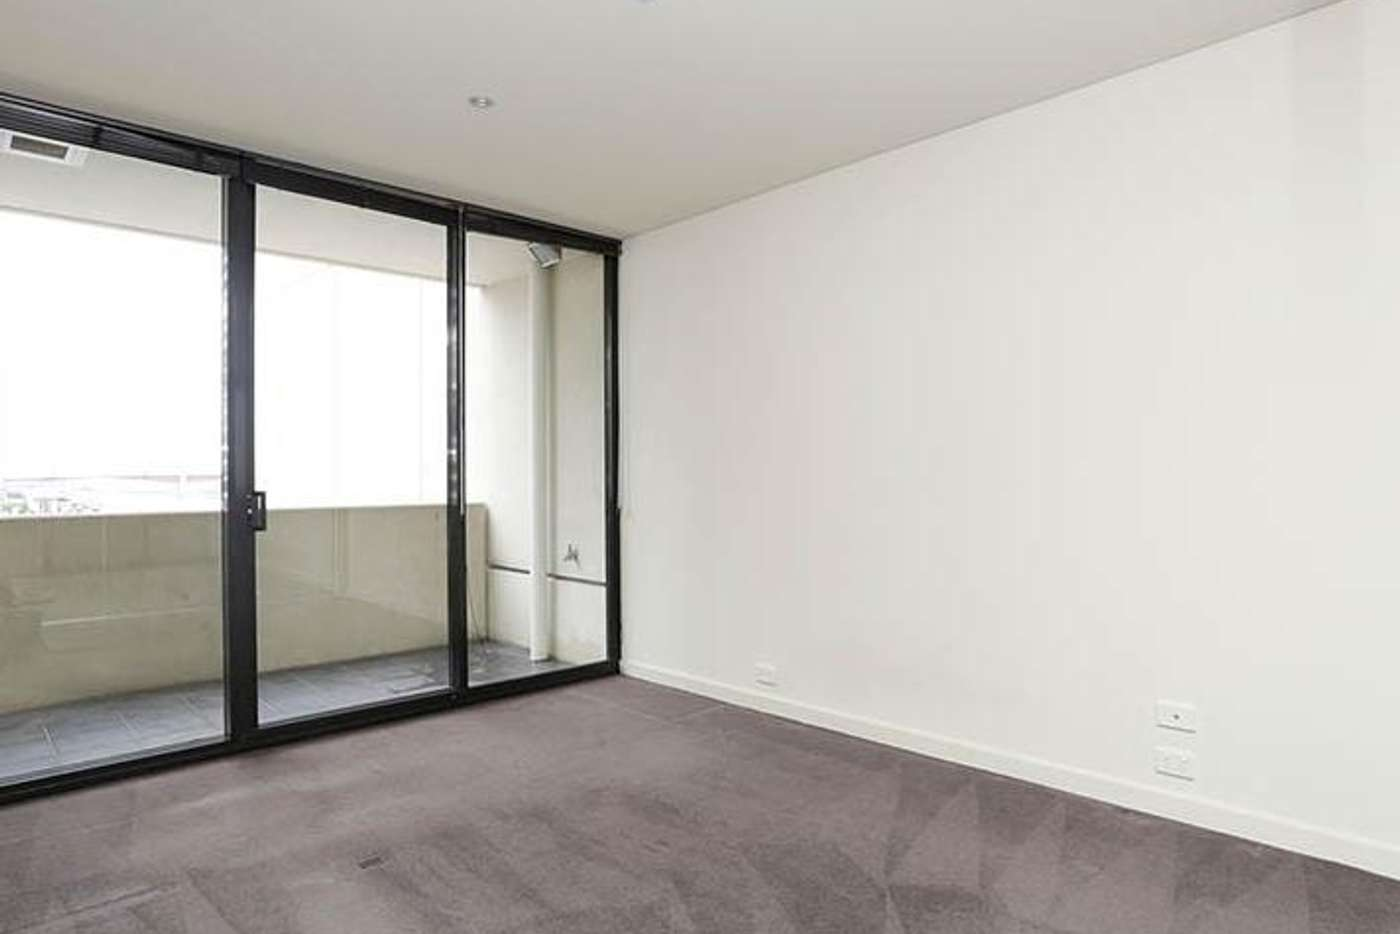 Sixth view of Homely apartment listing, 906/50 Lorimer Street, Docklands VIC 3008